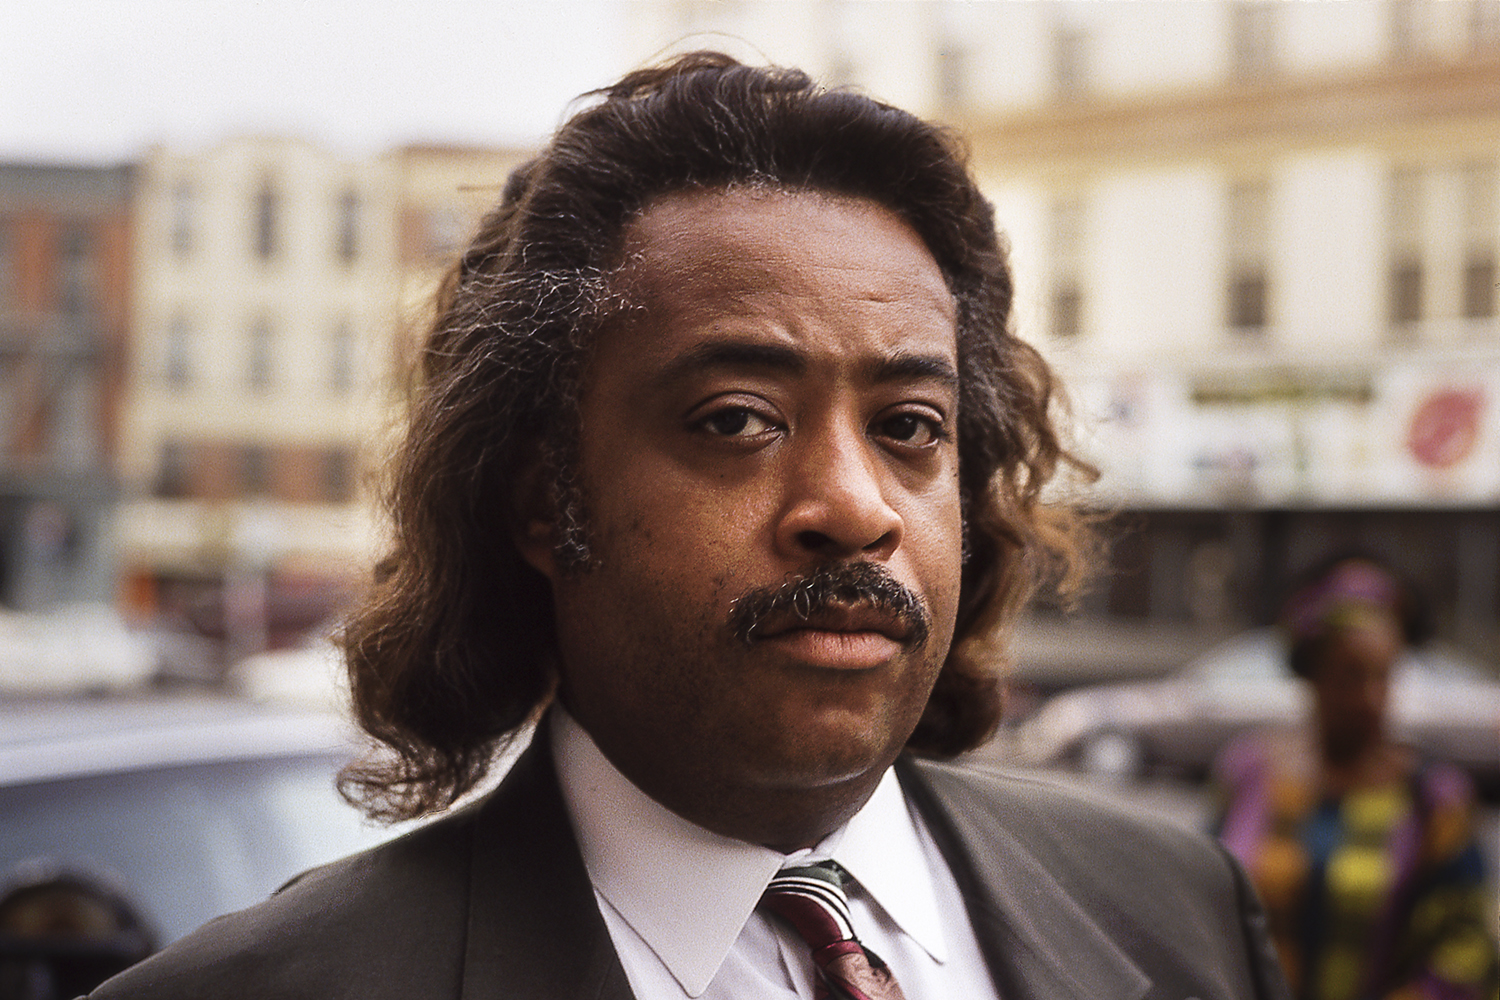 The Rev. Al Sharpton poses for a photo on Flatbush Avenue, Brooklyn, NY, 1994